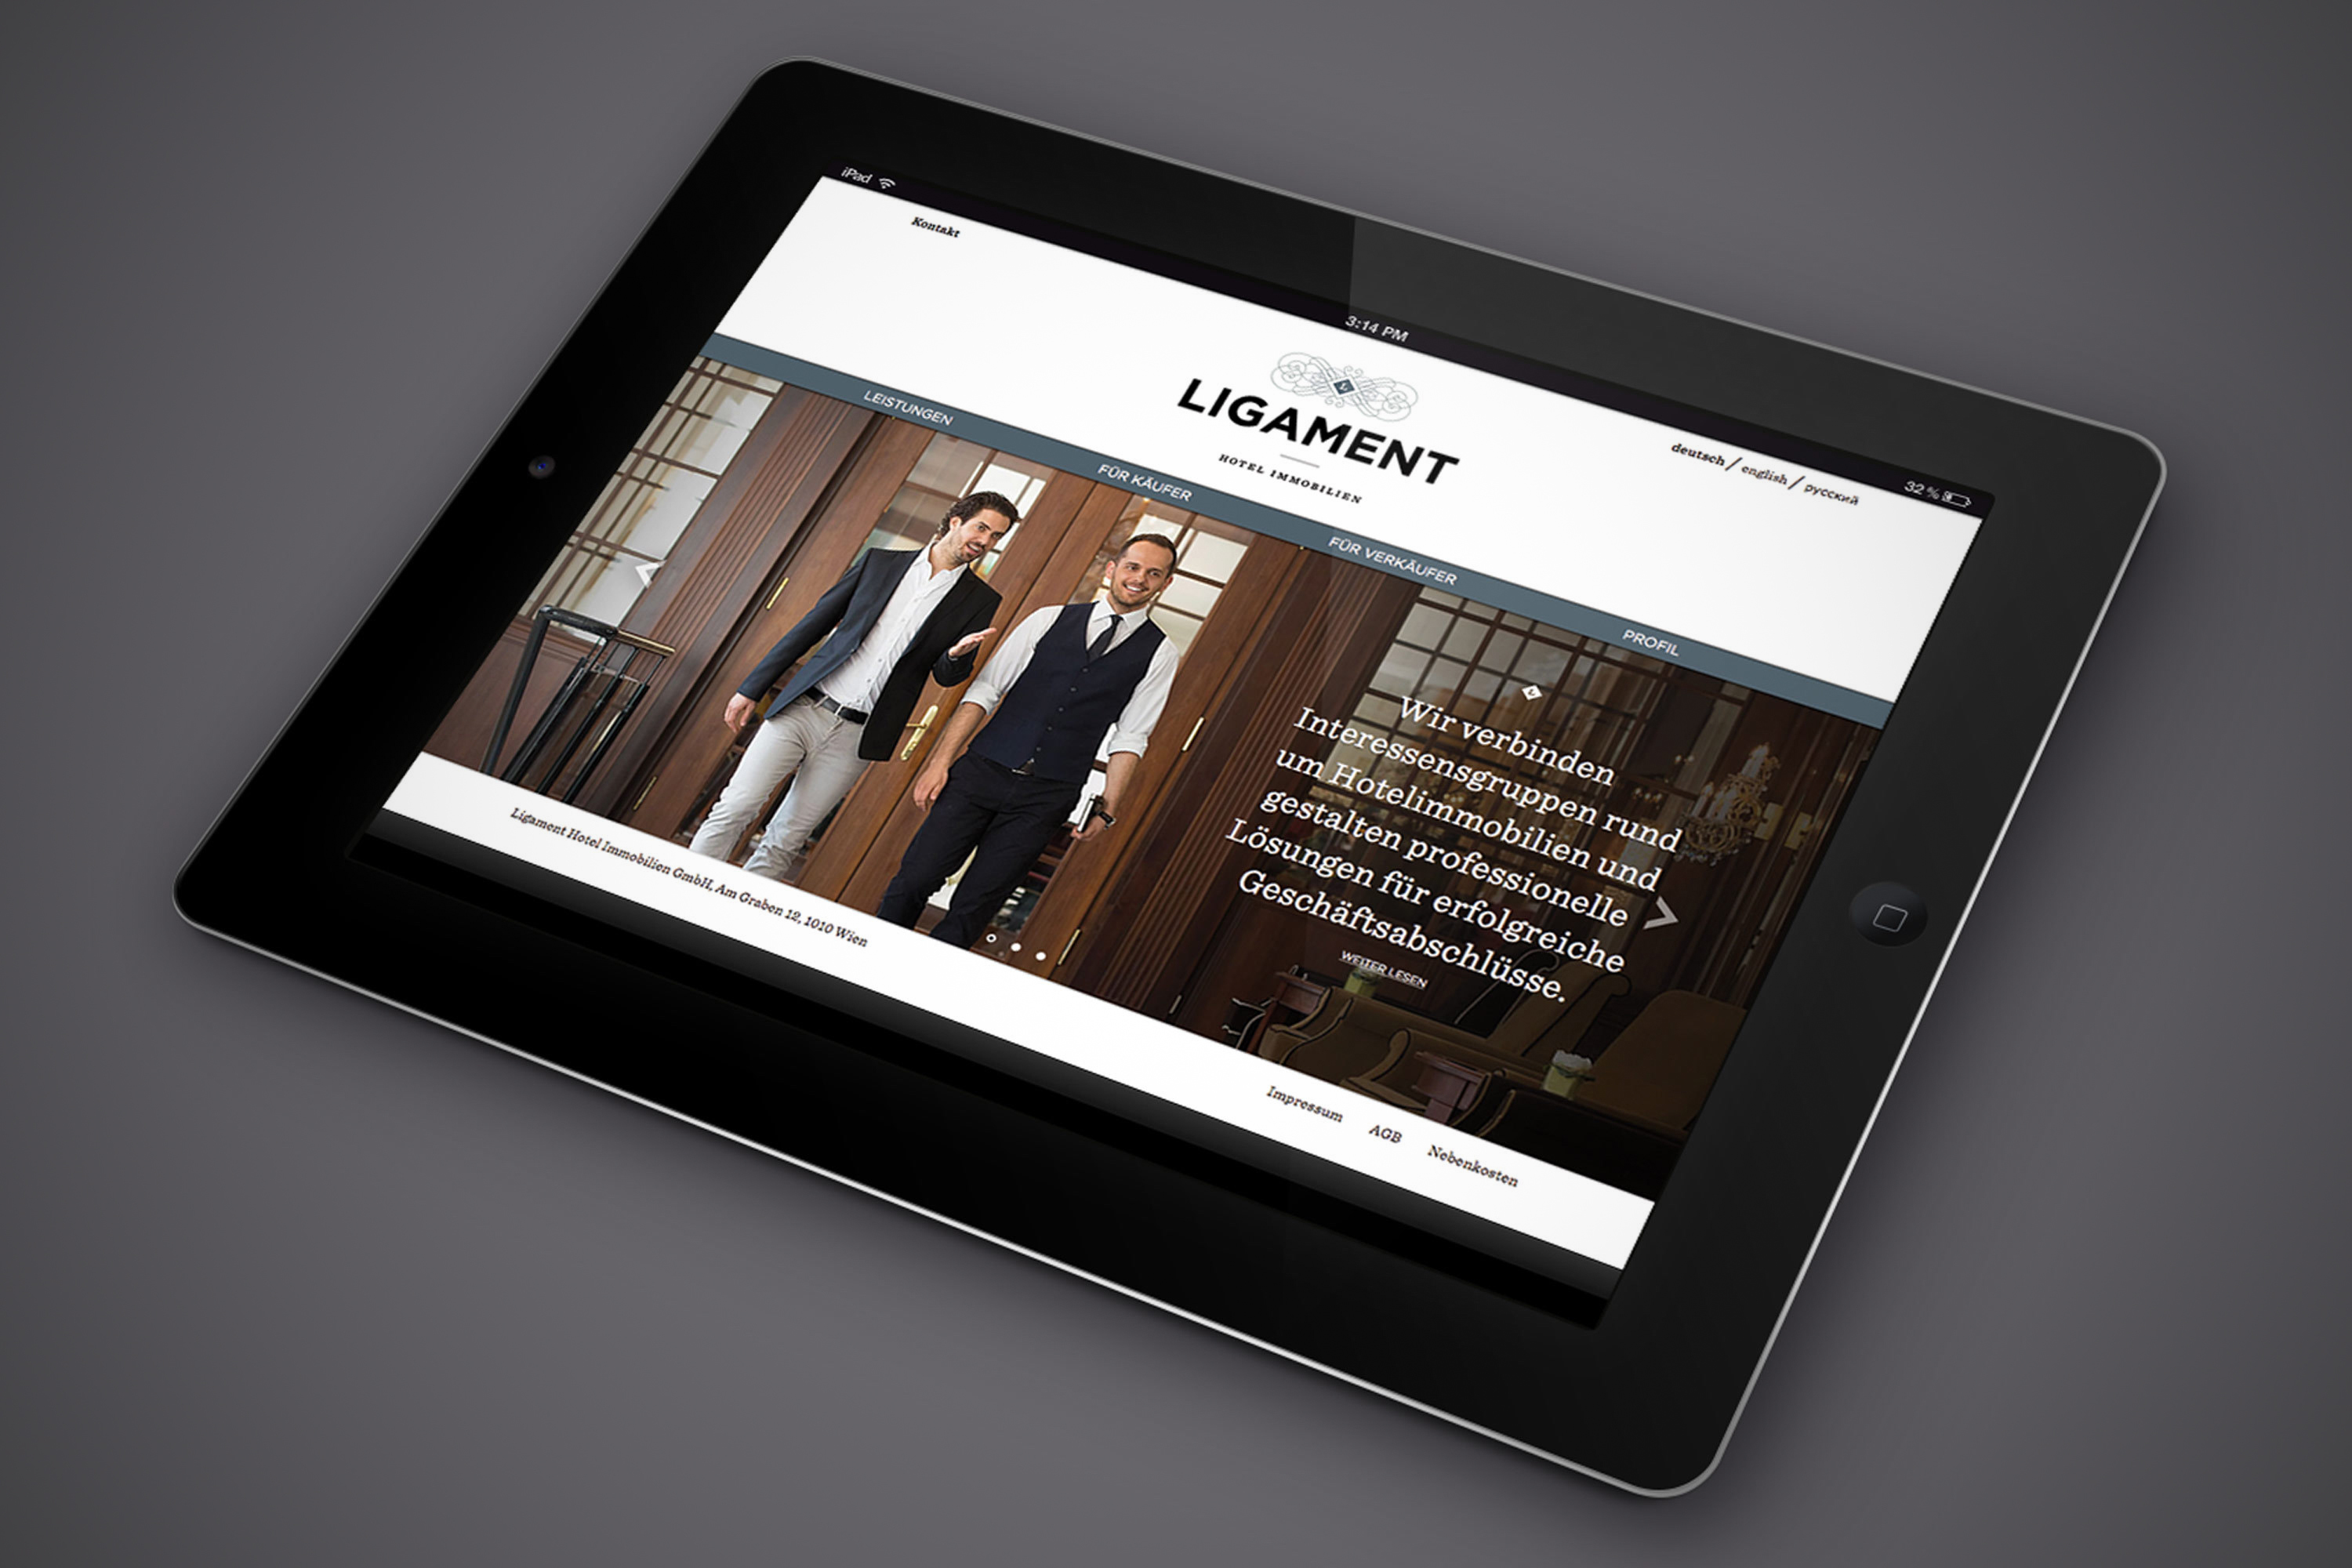 Design iPad Website Branding Hofegger Ligament